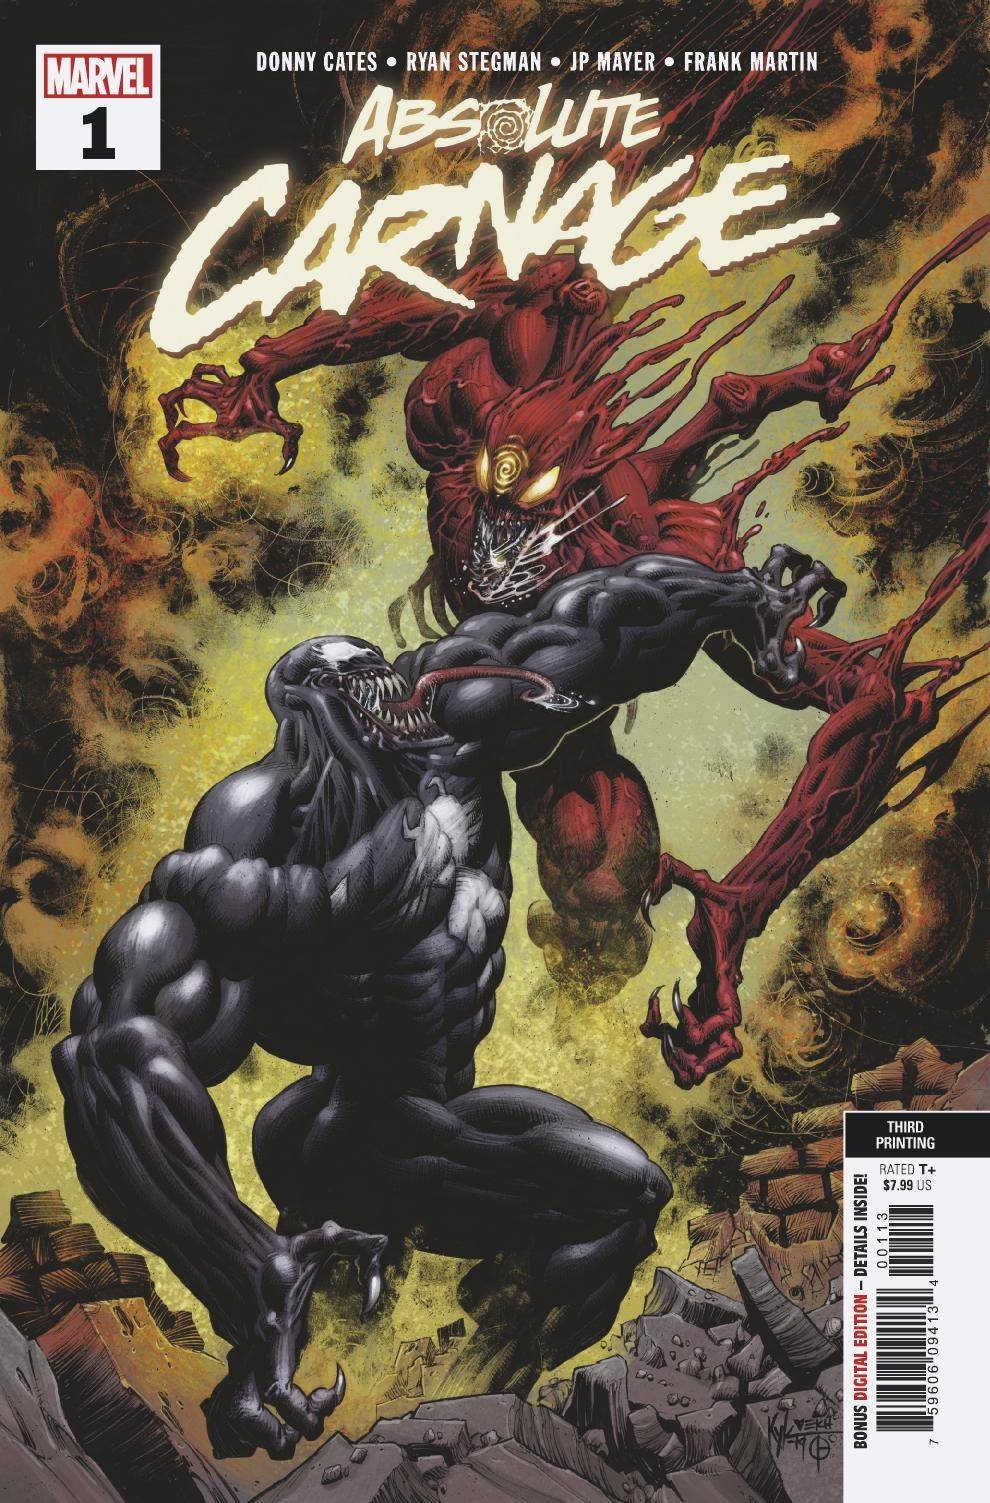 08/28/2019 ABSOLUTE CARNAGE #1 (OF 5) 3RD PTG NEW ART VAR AC